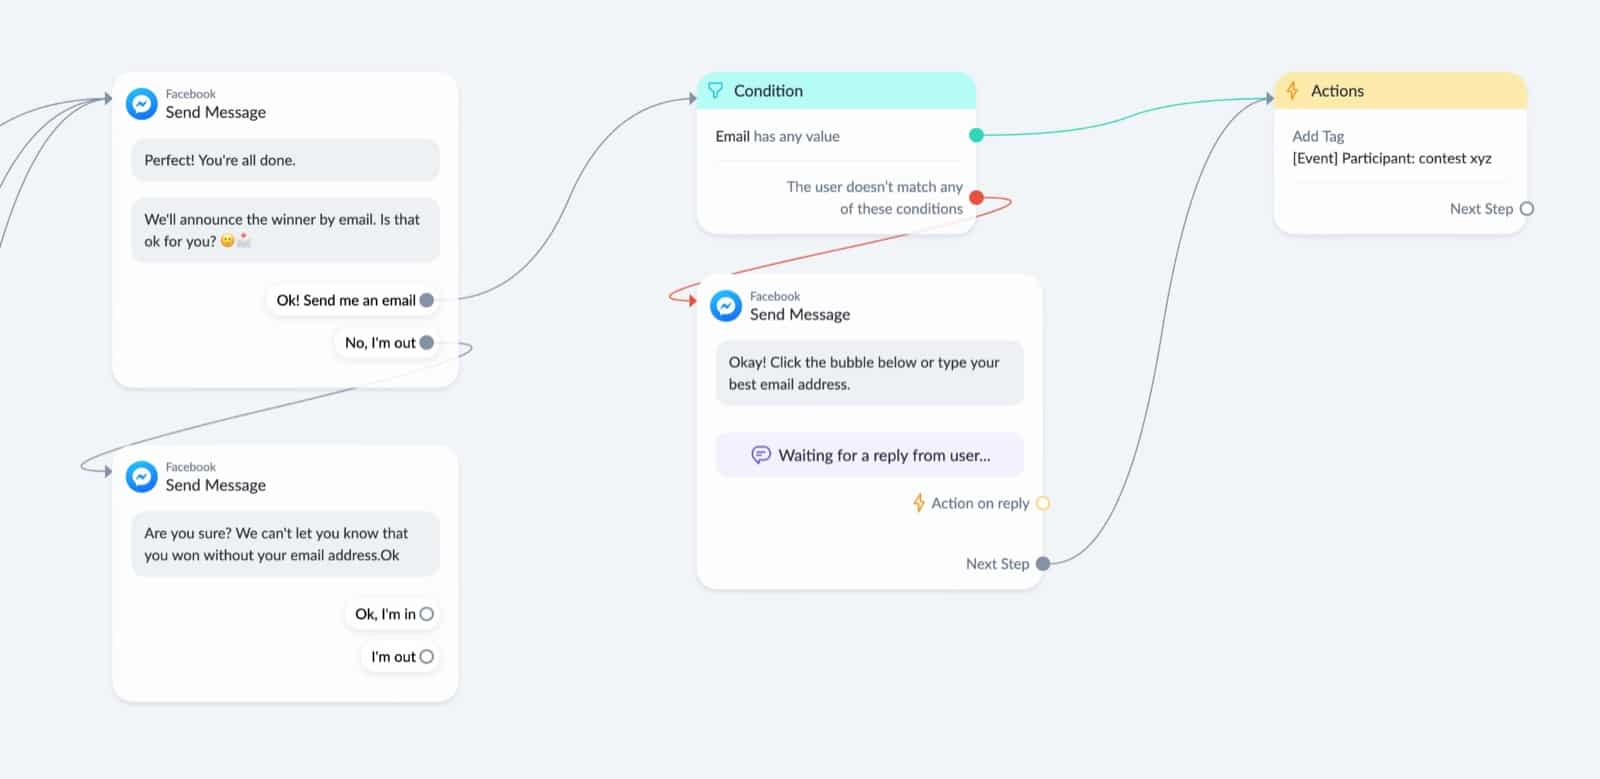 Add participant tag to flow in ManyChat